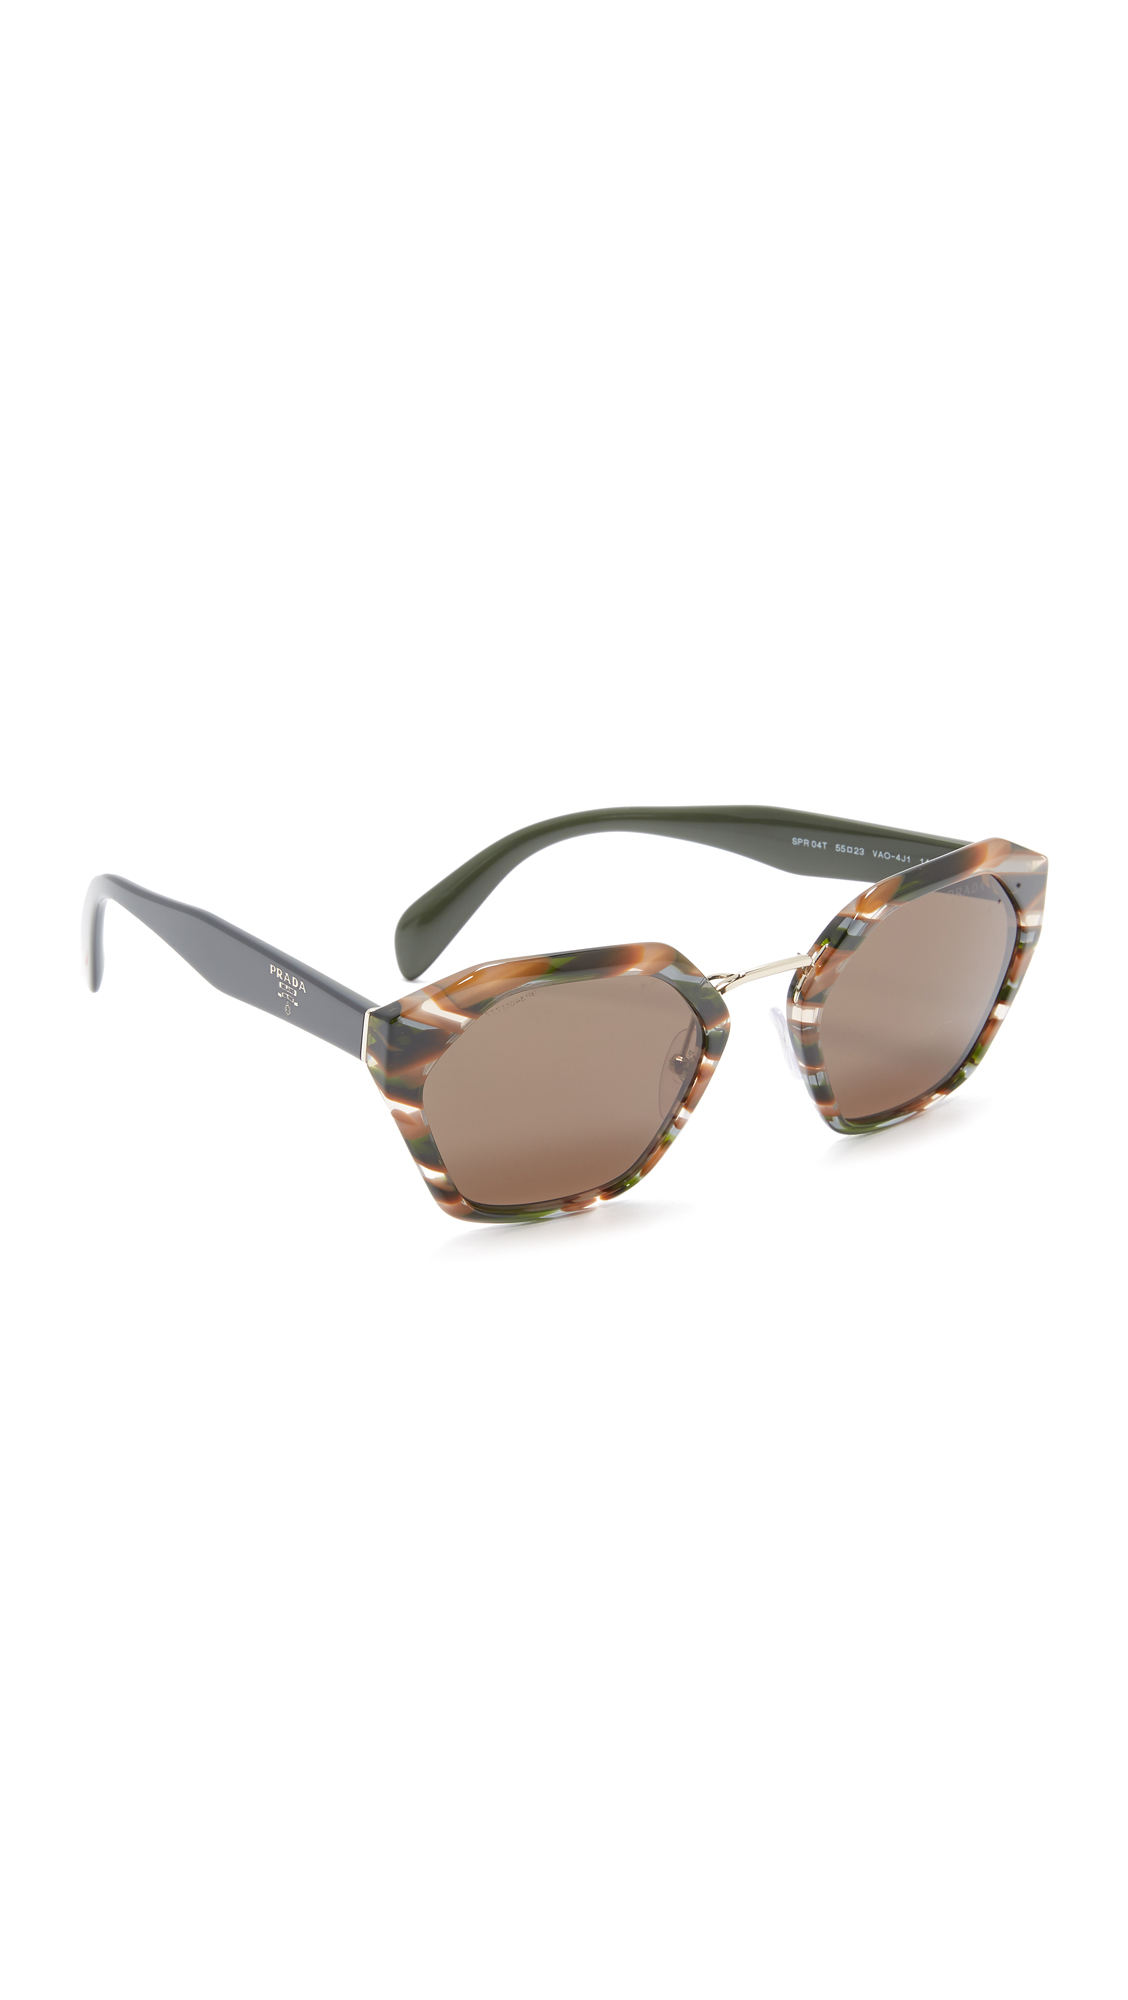 Prada Hexagon Sunglasses - Sheaves Grey Brown/Green at Shopbop